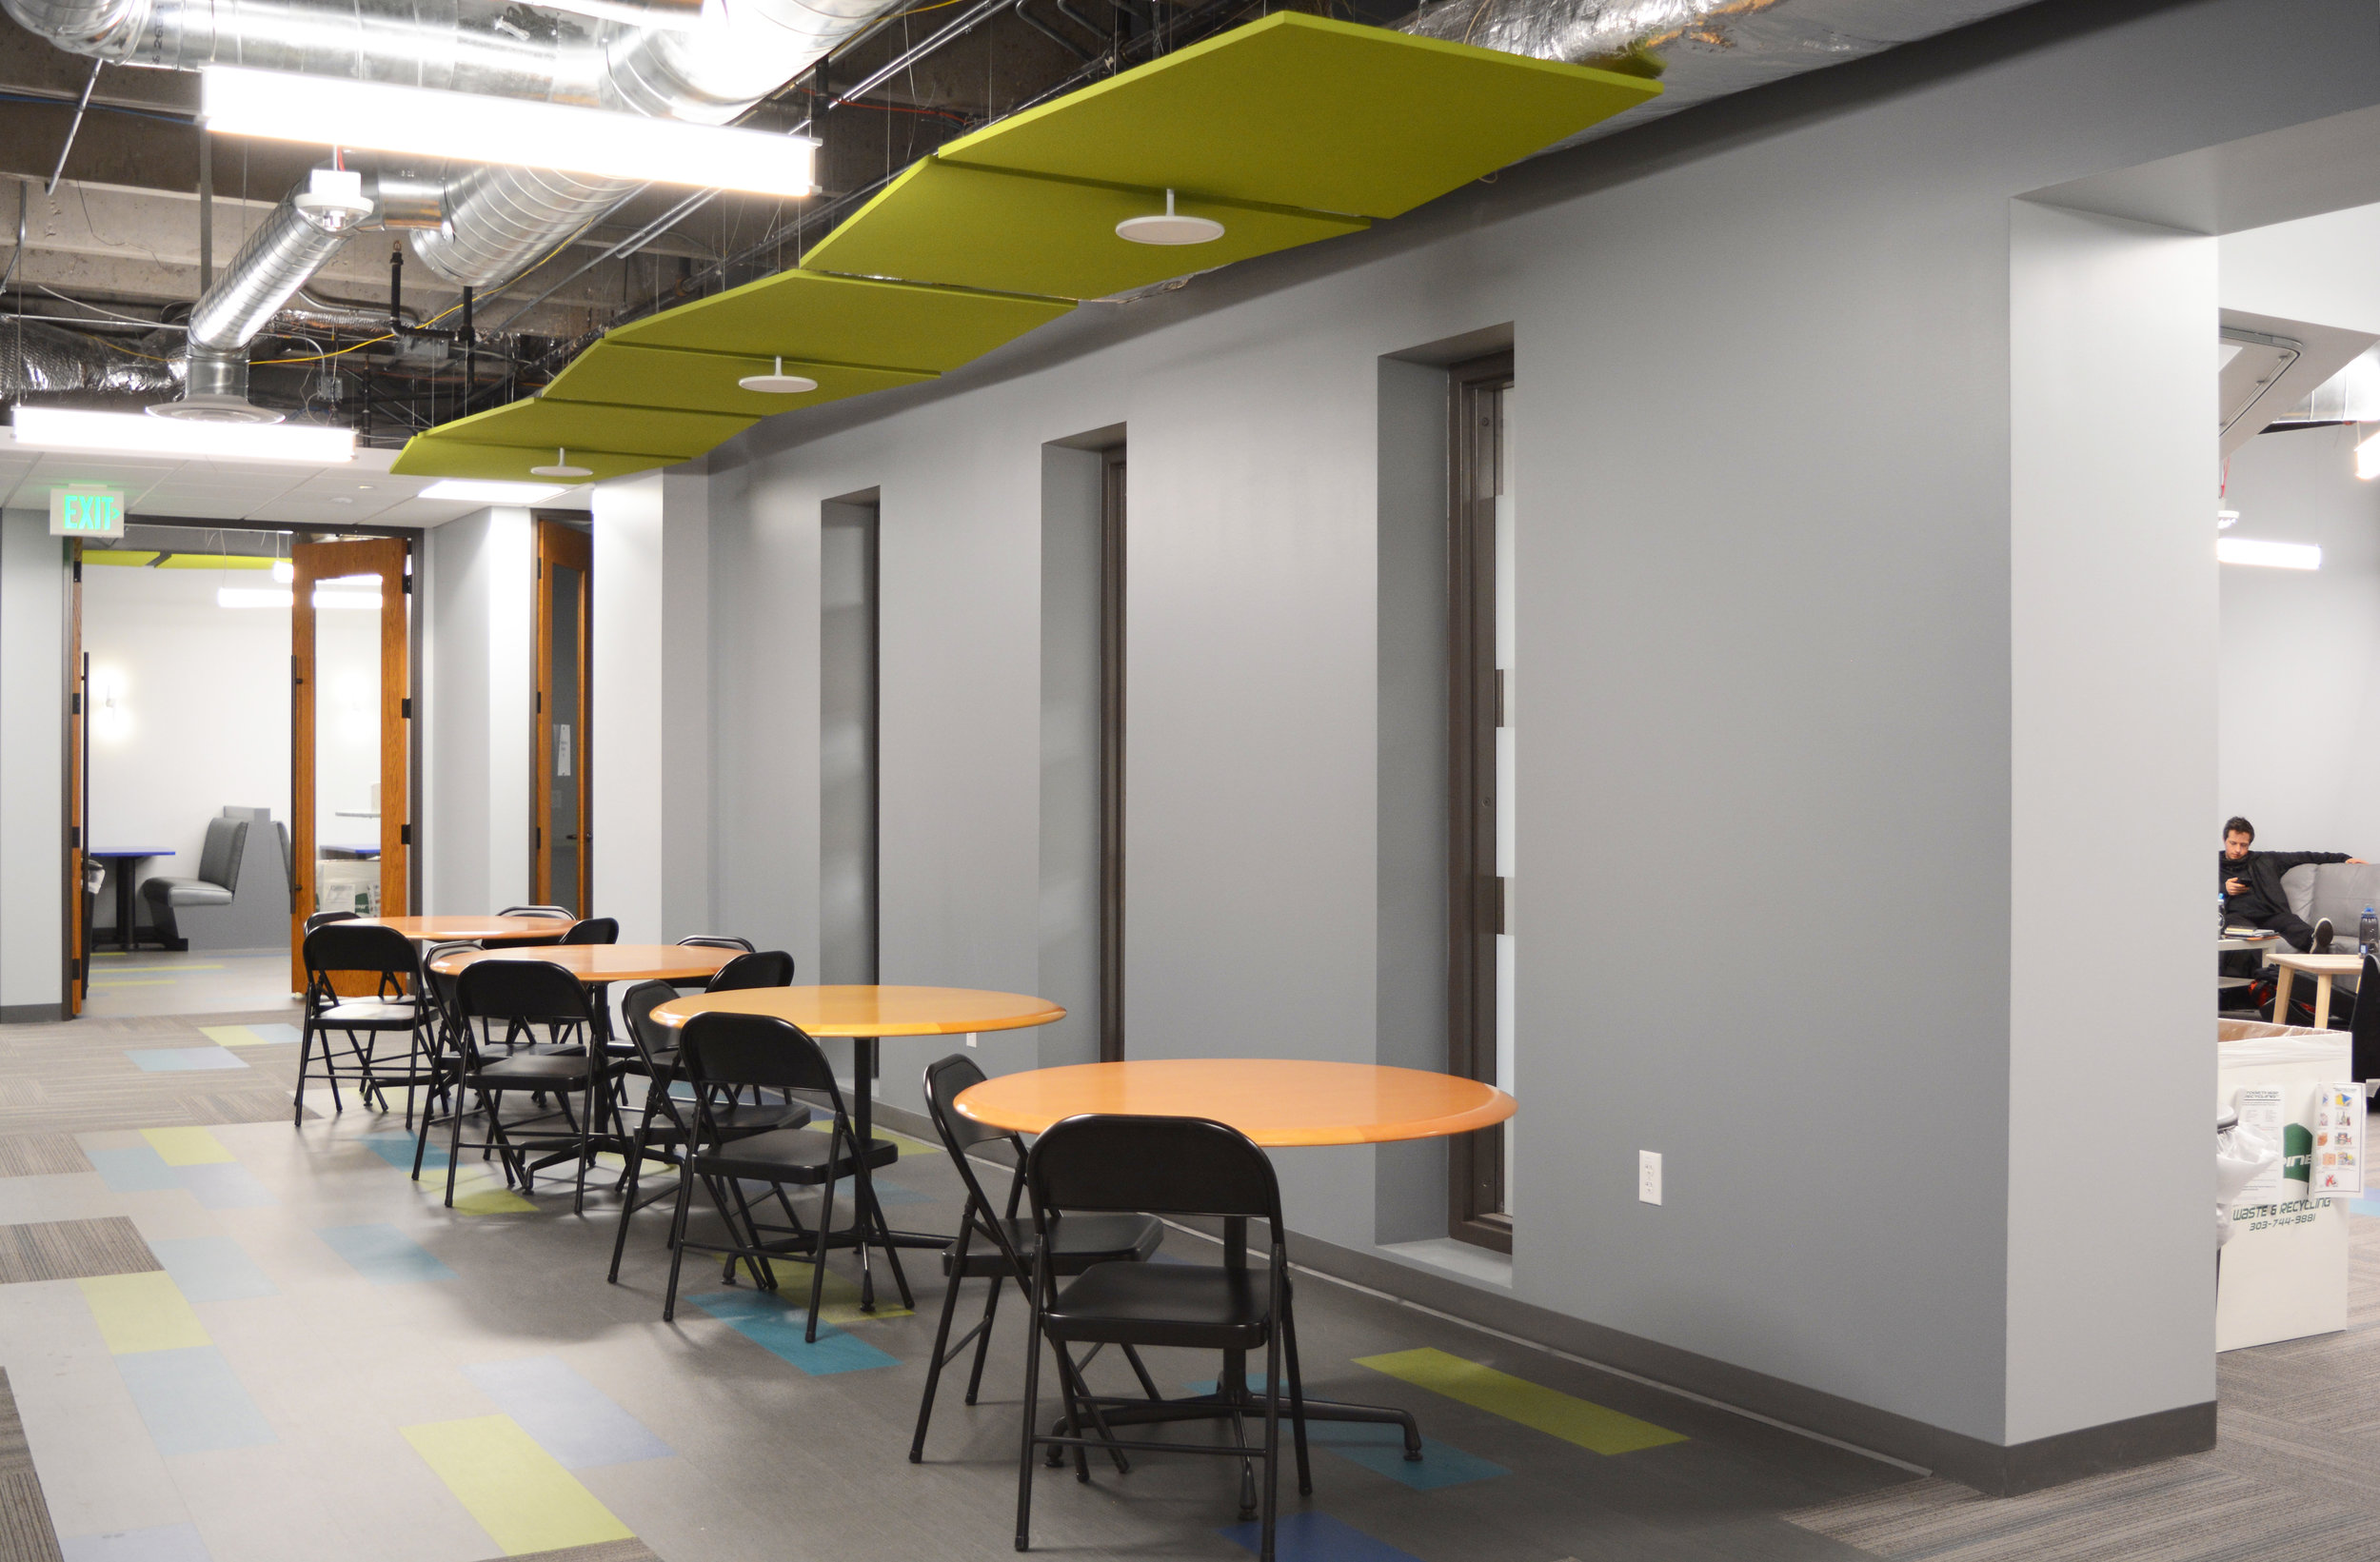 Although class schedules are staggered and the break room was designed to accommodate a generous amount of students, additional space in the suite was needed to handle the volume of all students eating at once. Replacing more of the carpet tiles with LVT allowed the break area to extend from the room itself, and provide a hallway for eating, studying and conversation.